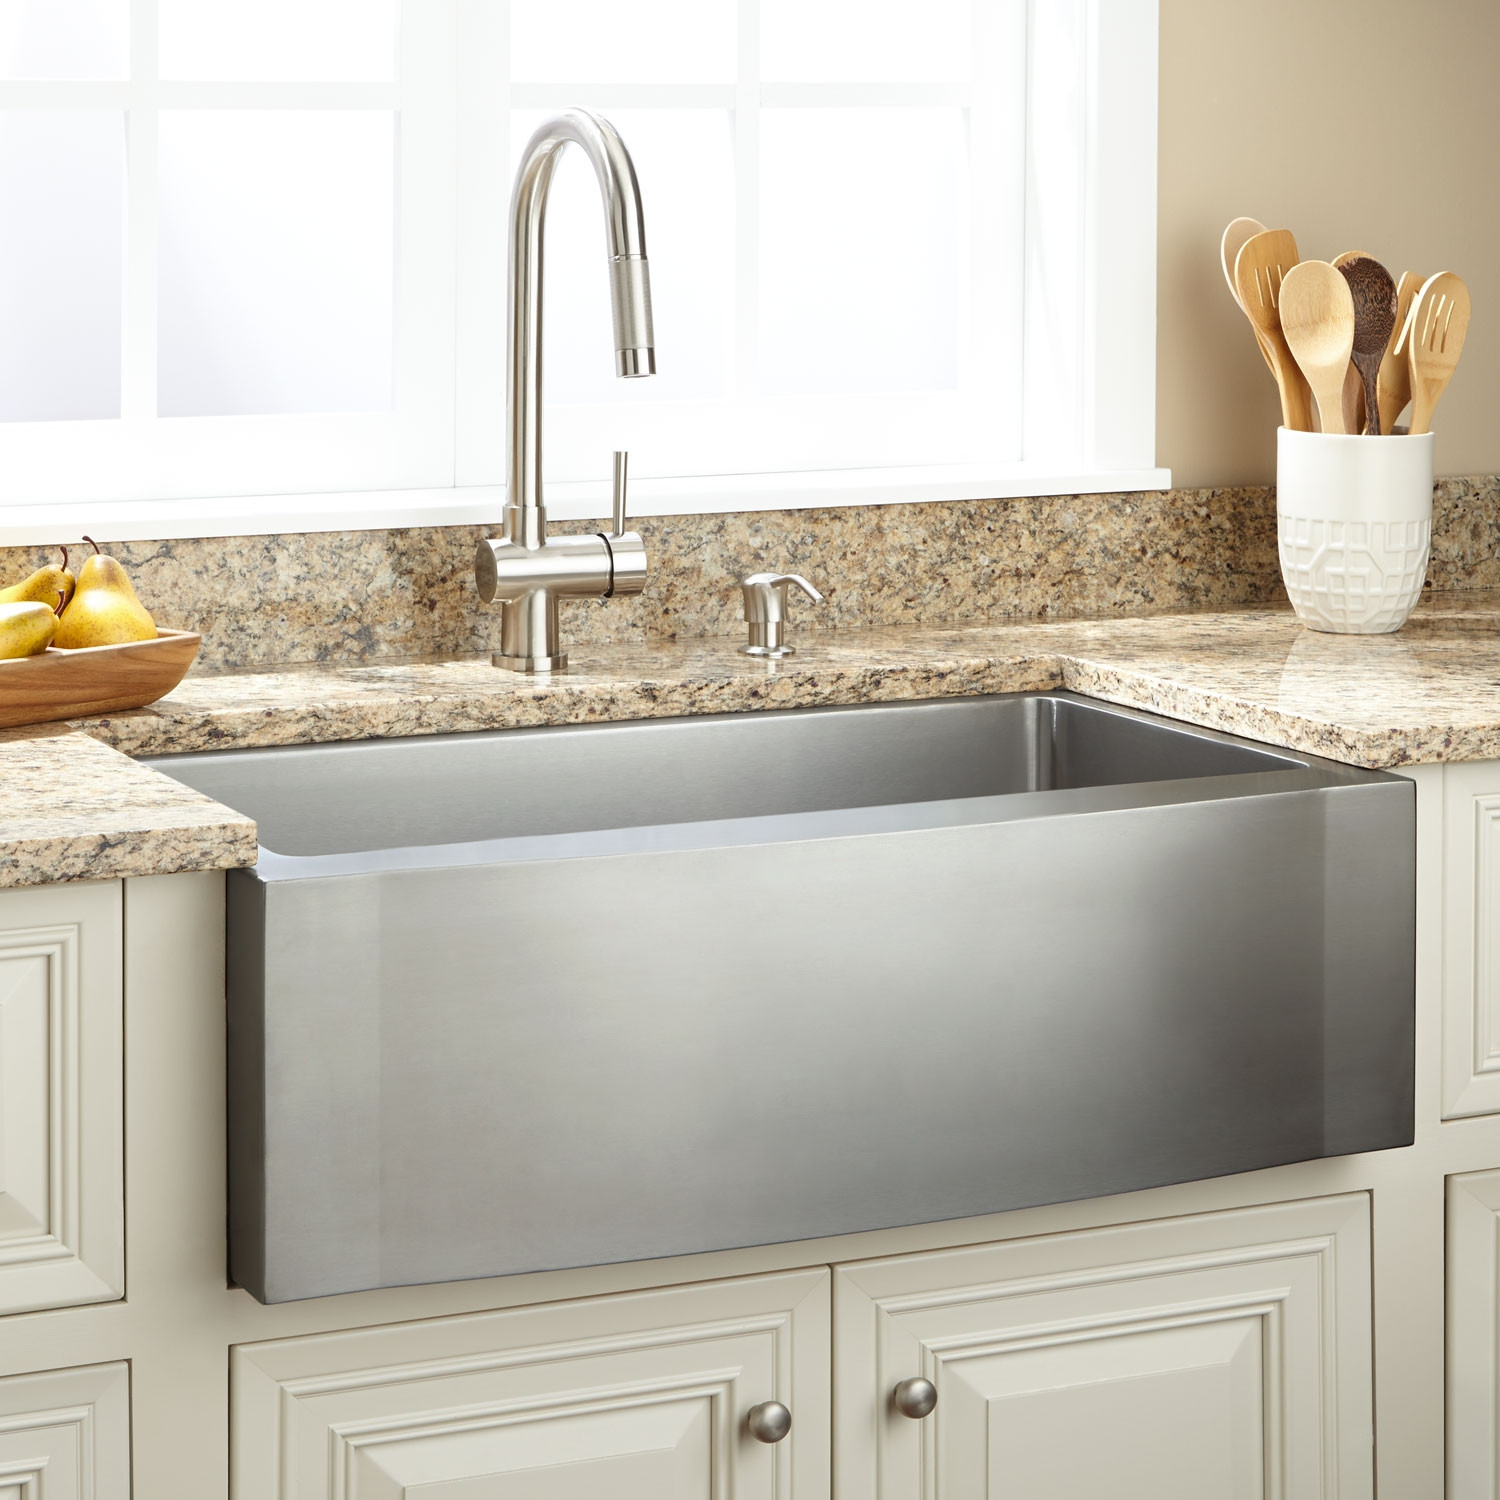 new 33 in single bowl kitchen sink stainless farmhouse on kitchens with farmhouse sinks id=86523